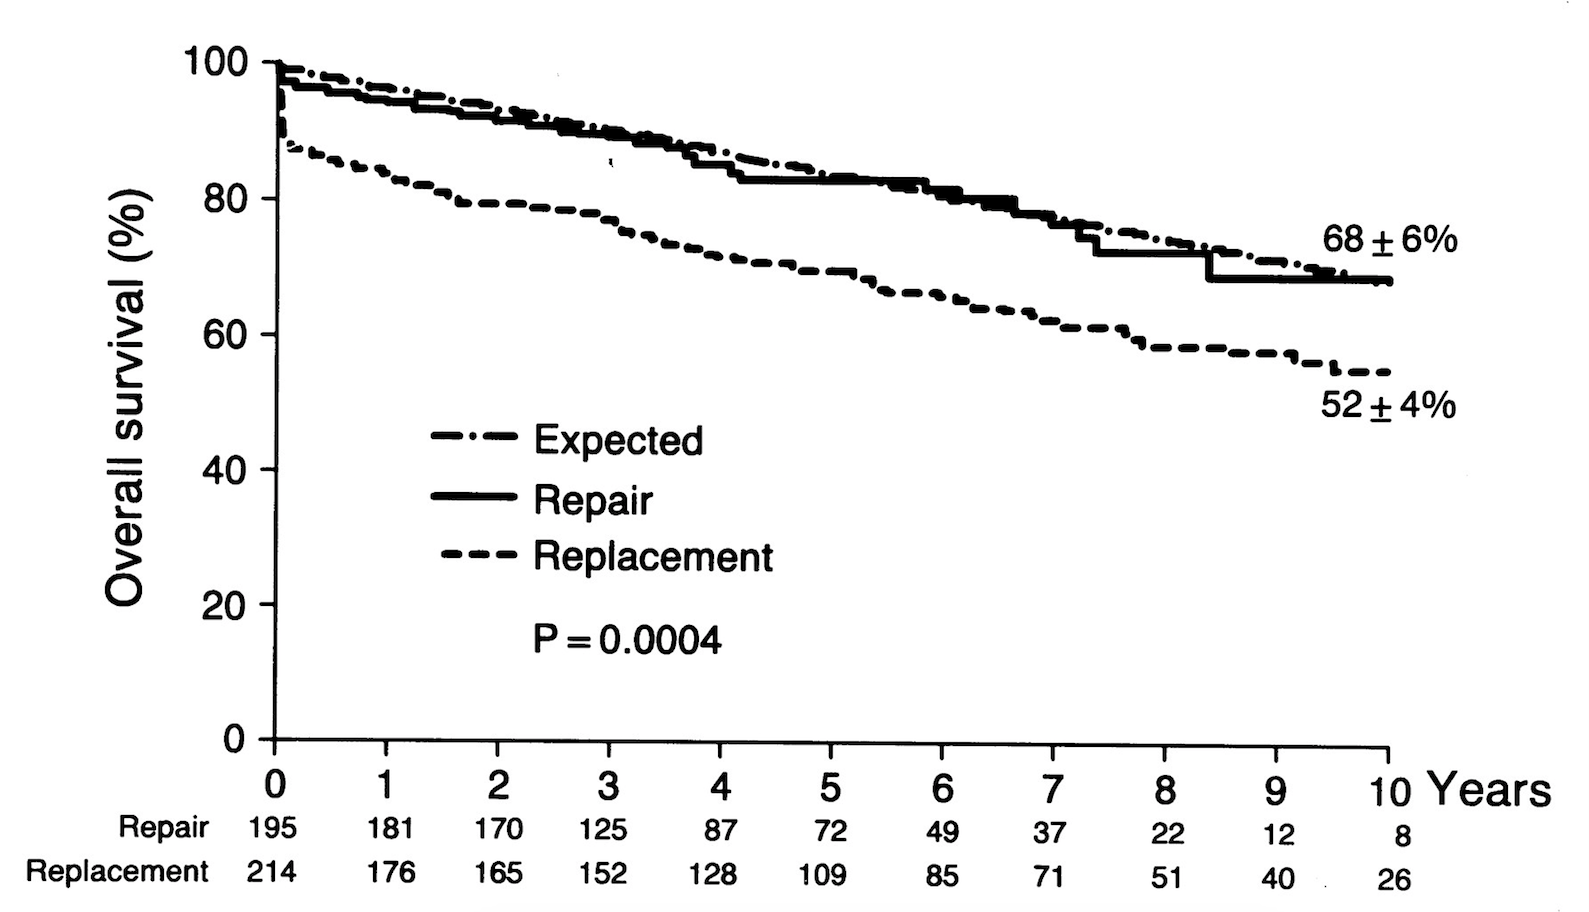 Valve Repair Improves The Outcome Of Surgery For Mitral